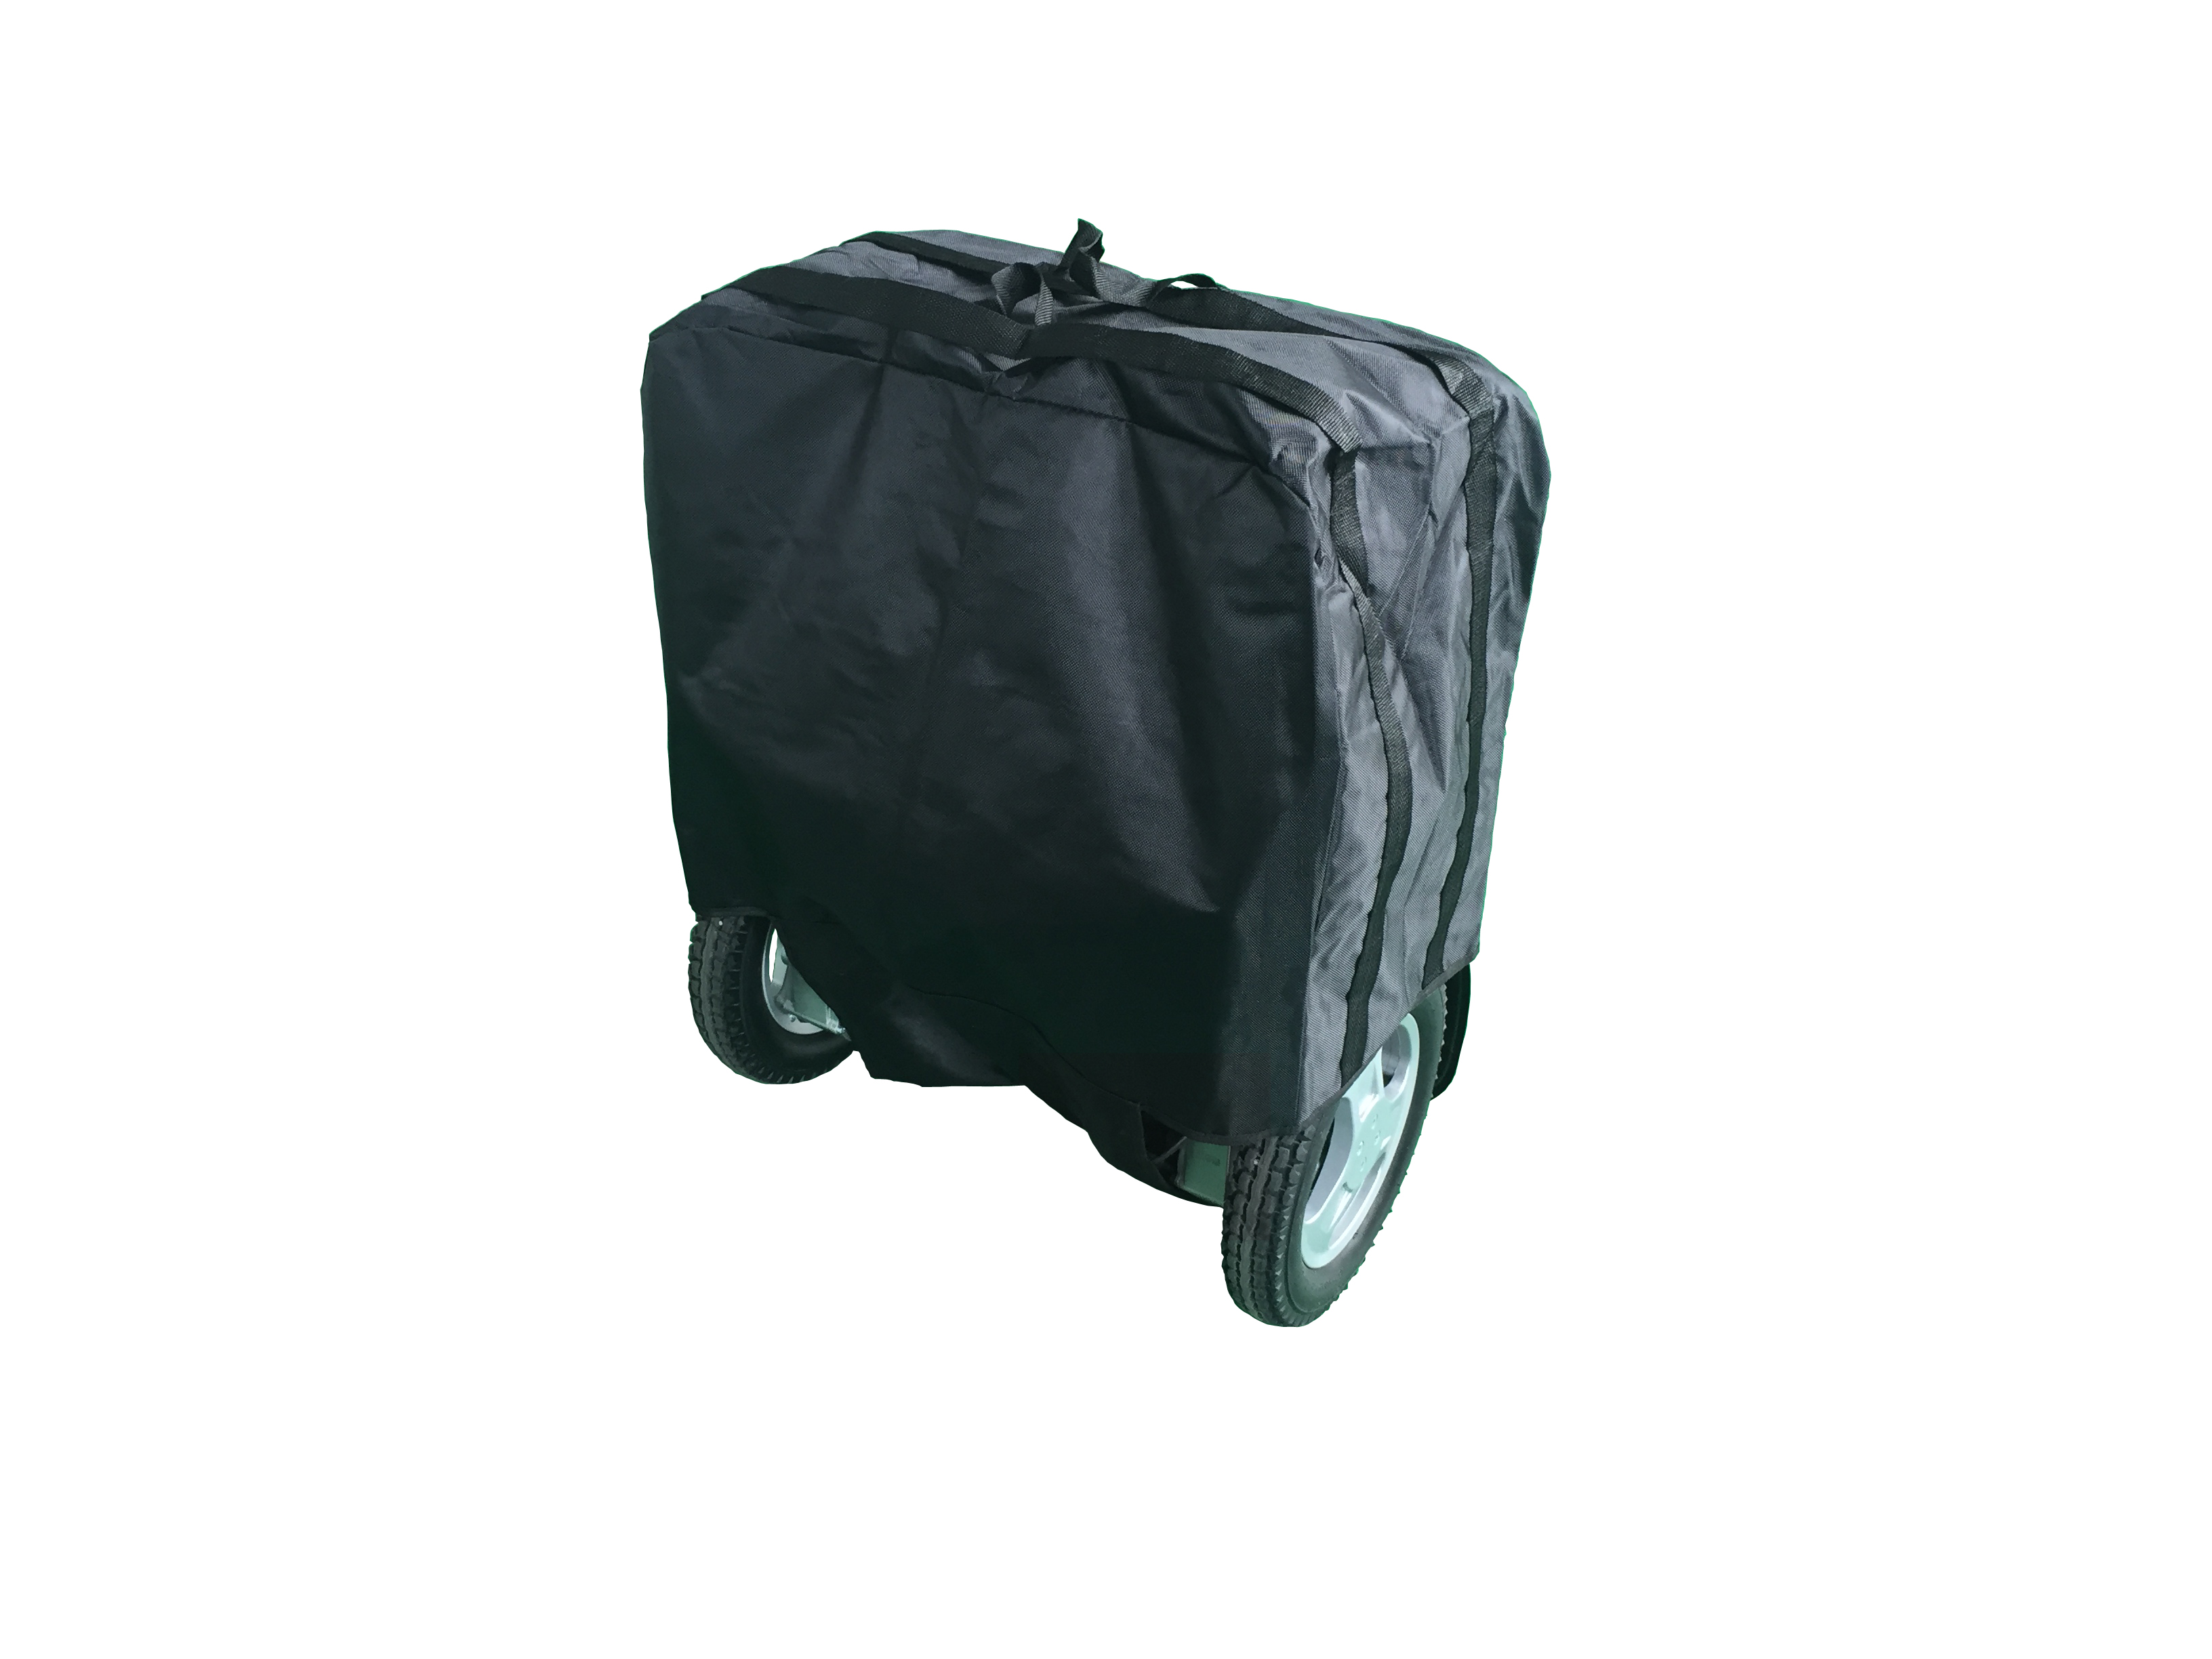 power chair accessories bags lifts for home use travel bag with id window  quick n mobile 888 701 8799